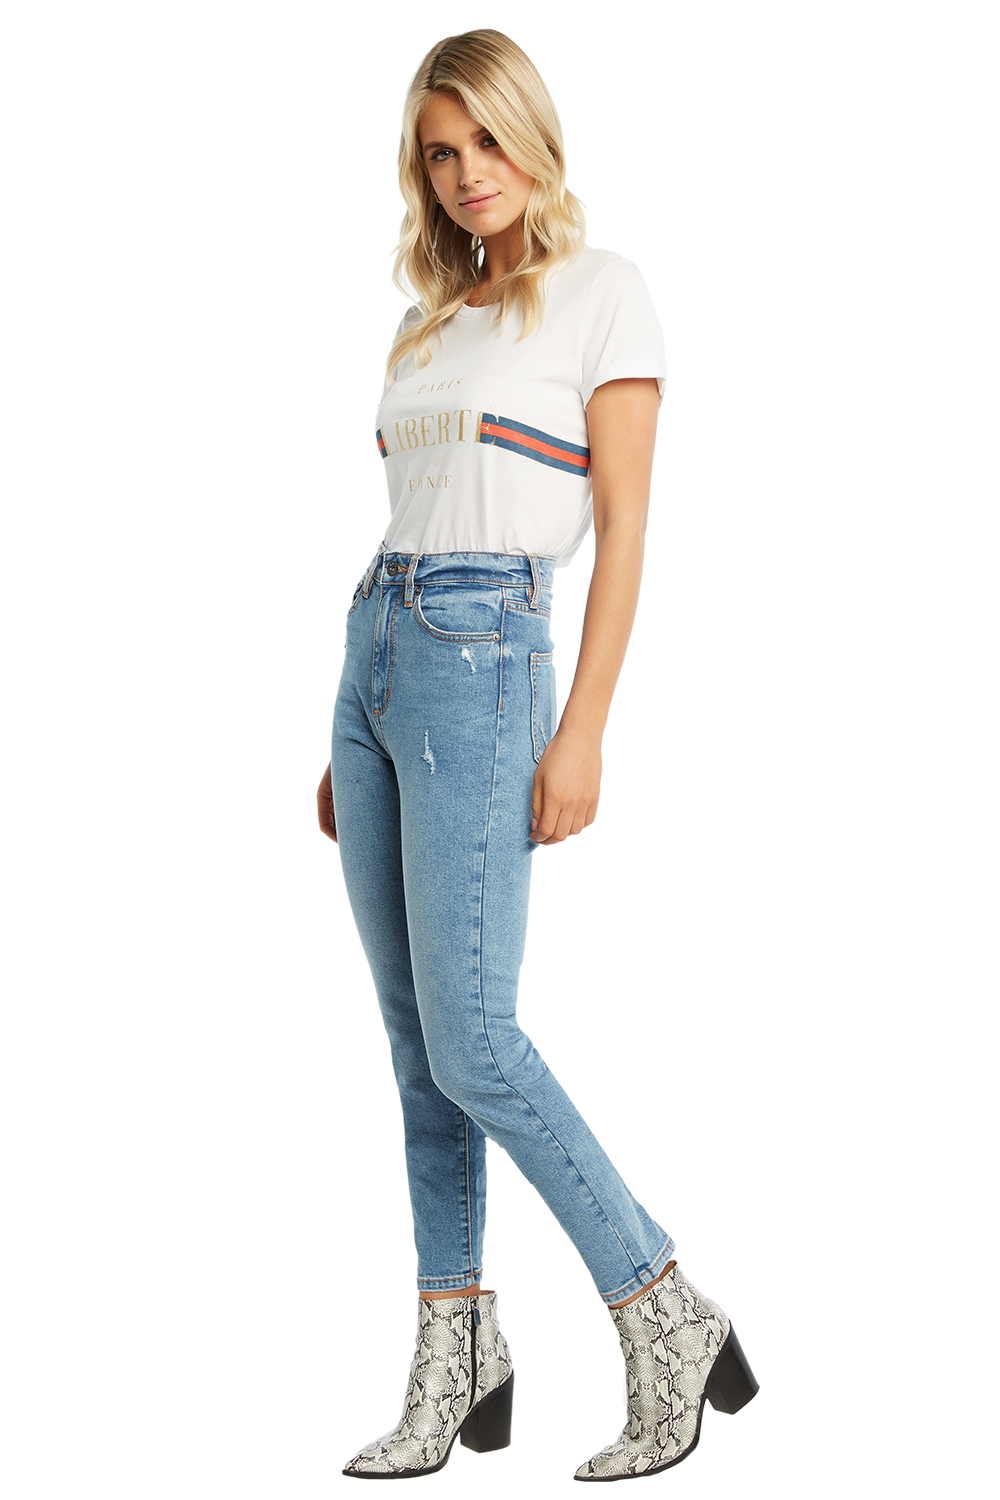 SIENNA SUPER HIGH JEAN in colour TRUE NAVY